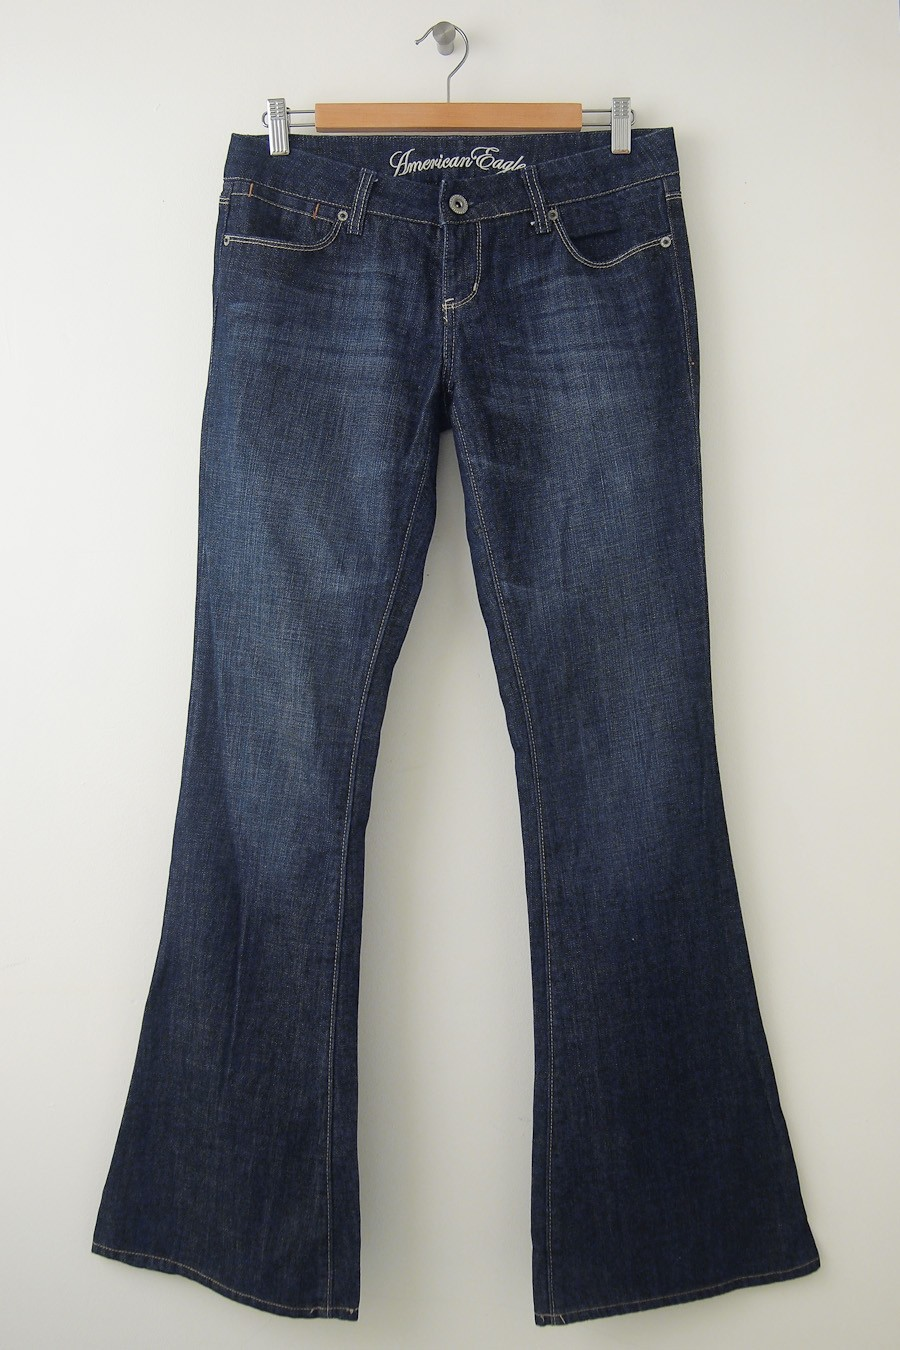 New American Eagle Outfitters Favorite Jeans Women39s 2 Regular